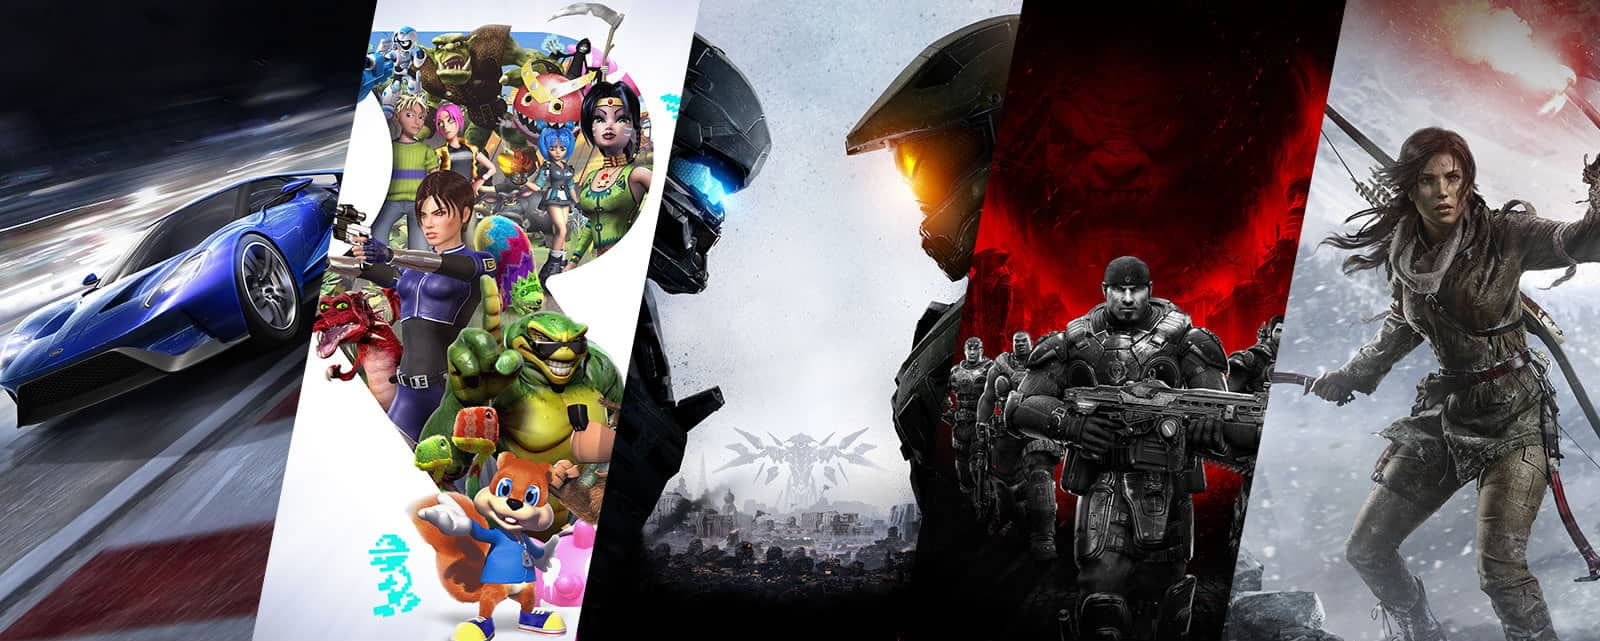 The greatest year in the history of games